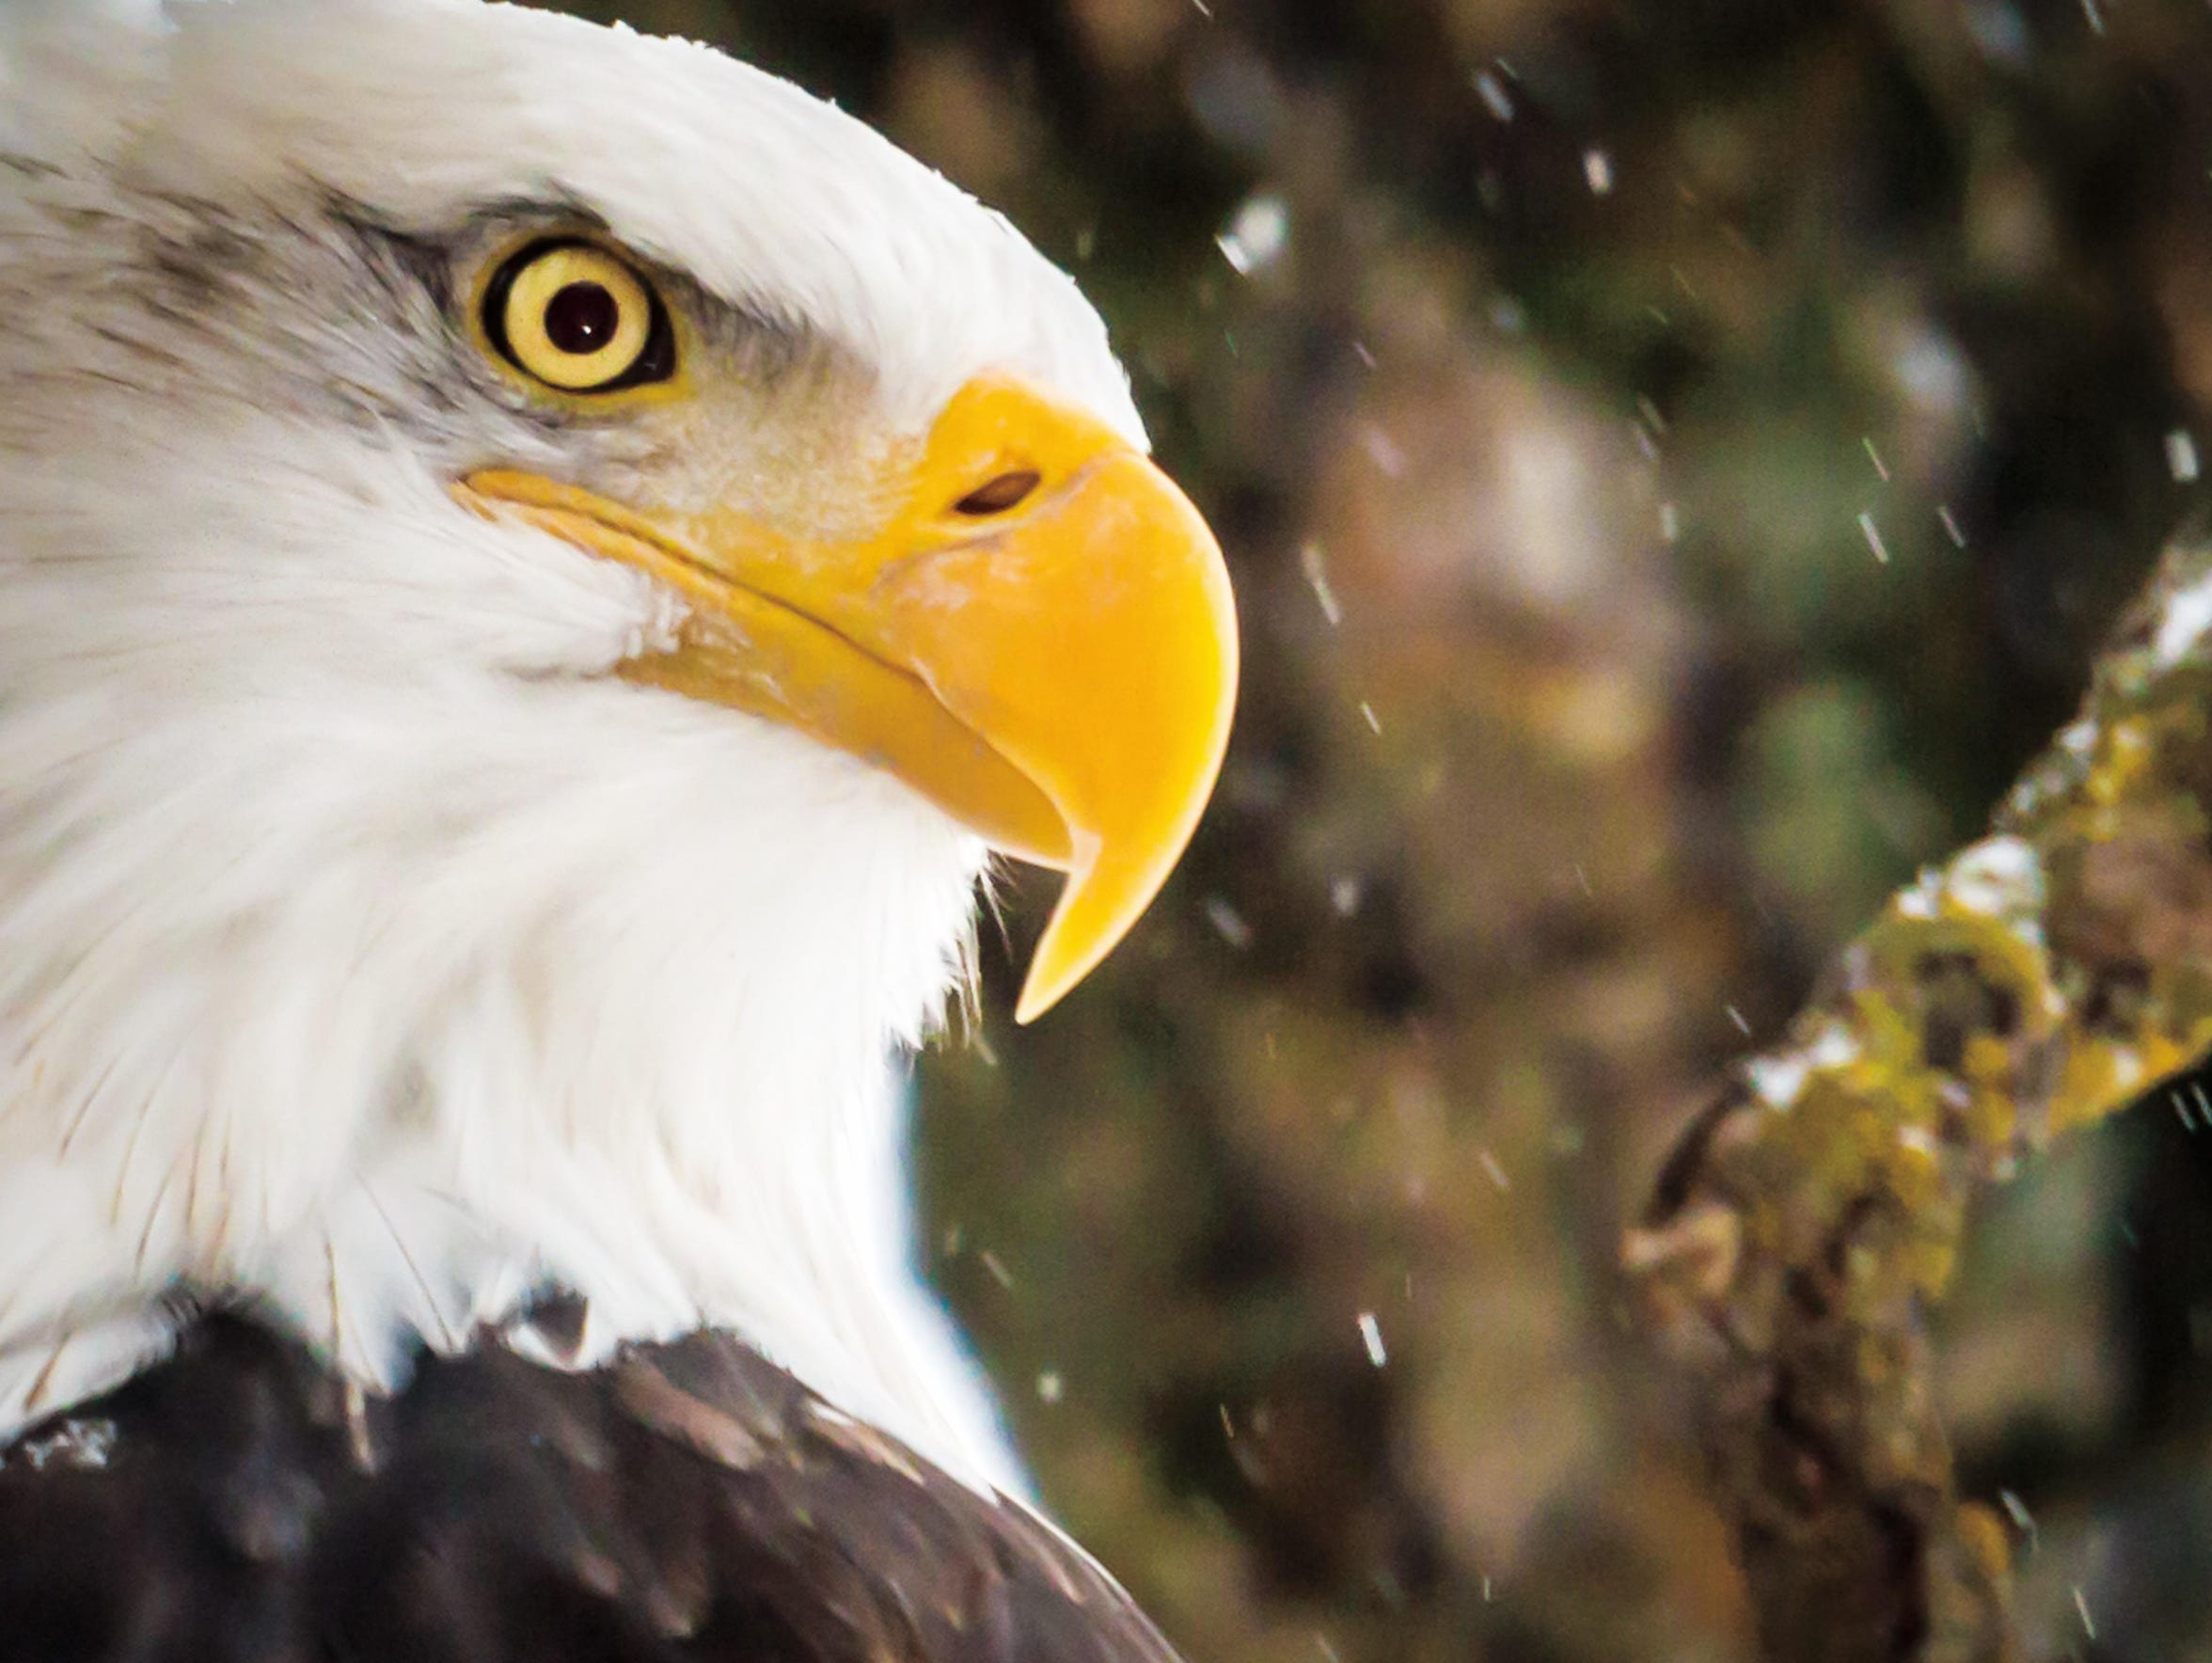 A snowy day saw a close-up view of an eagle. Eagle